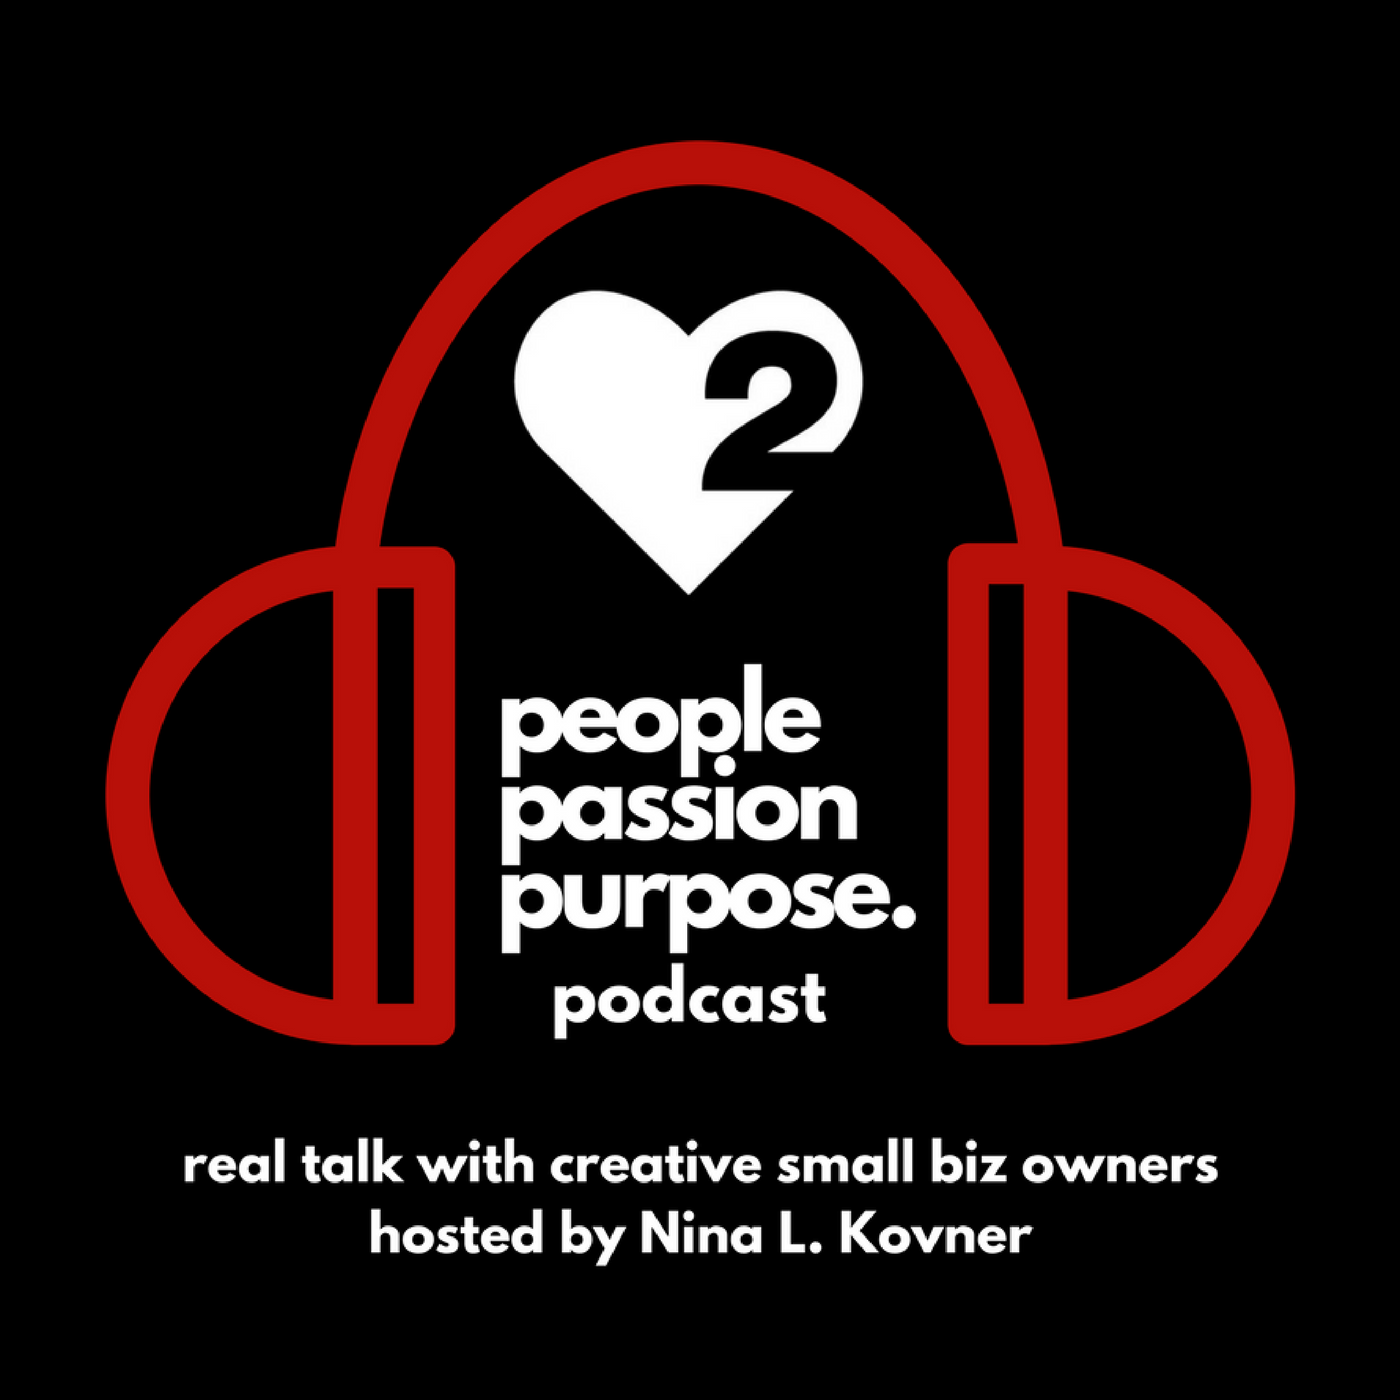 people passion purpose podcast with host Nina L. Kovner show art